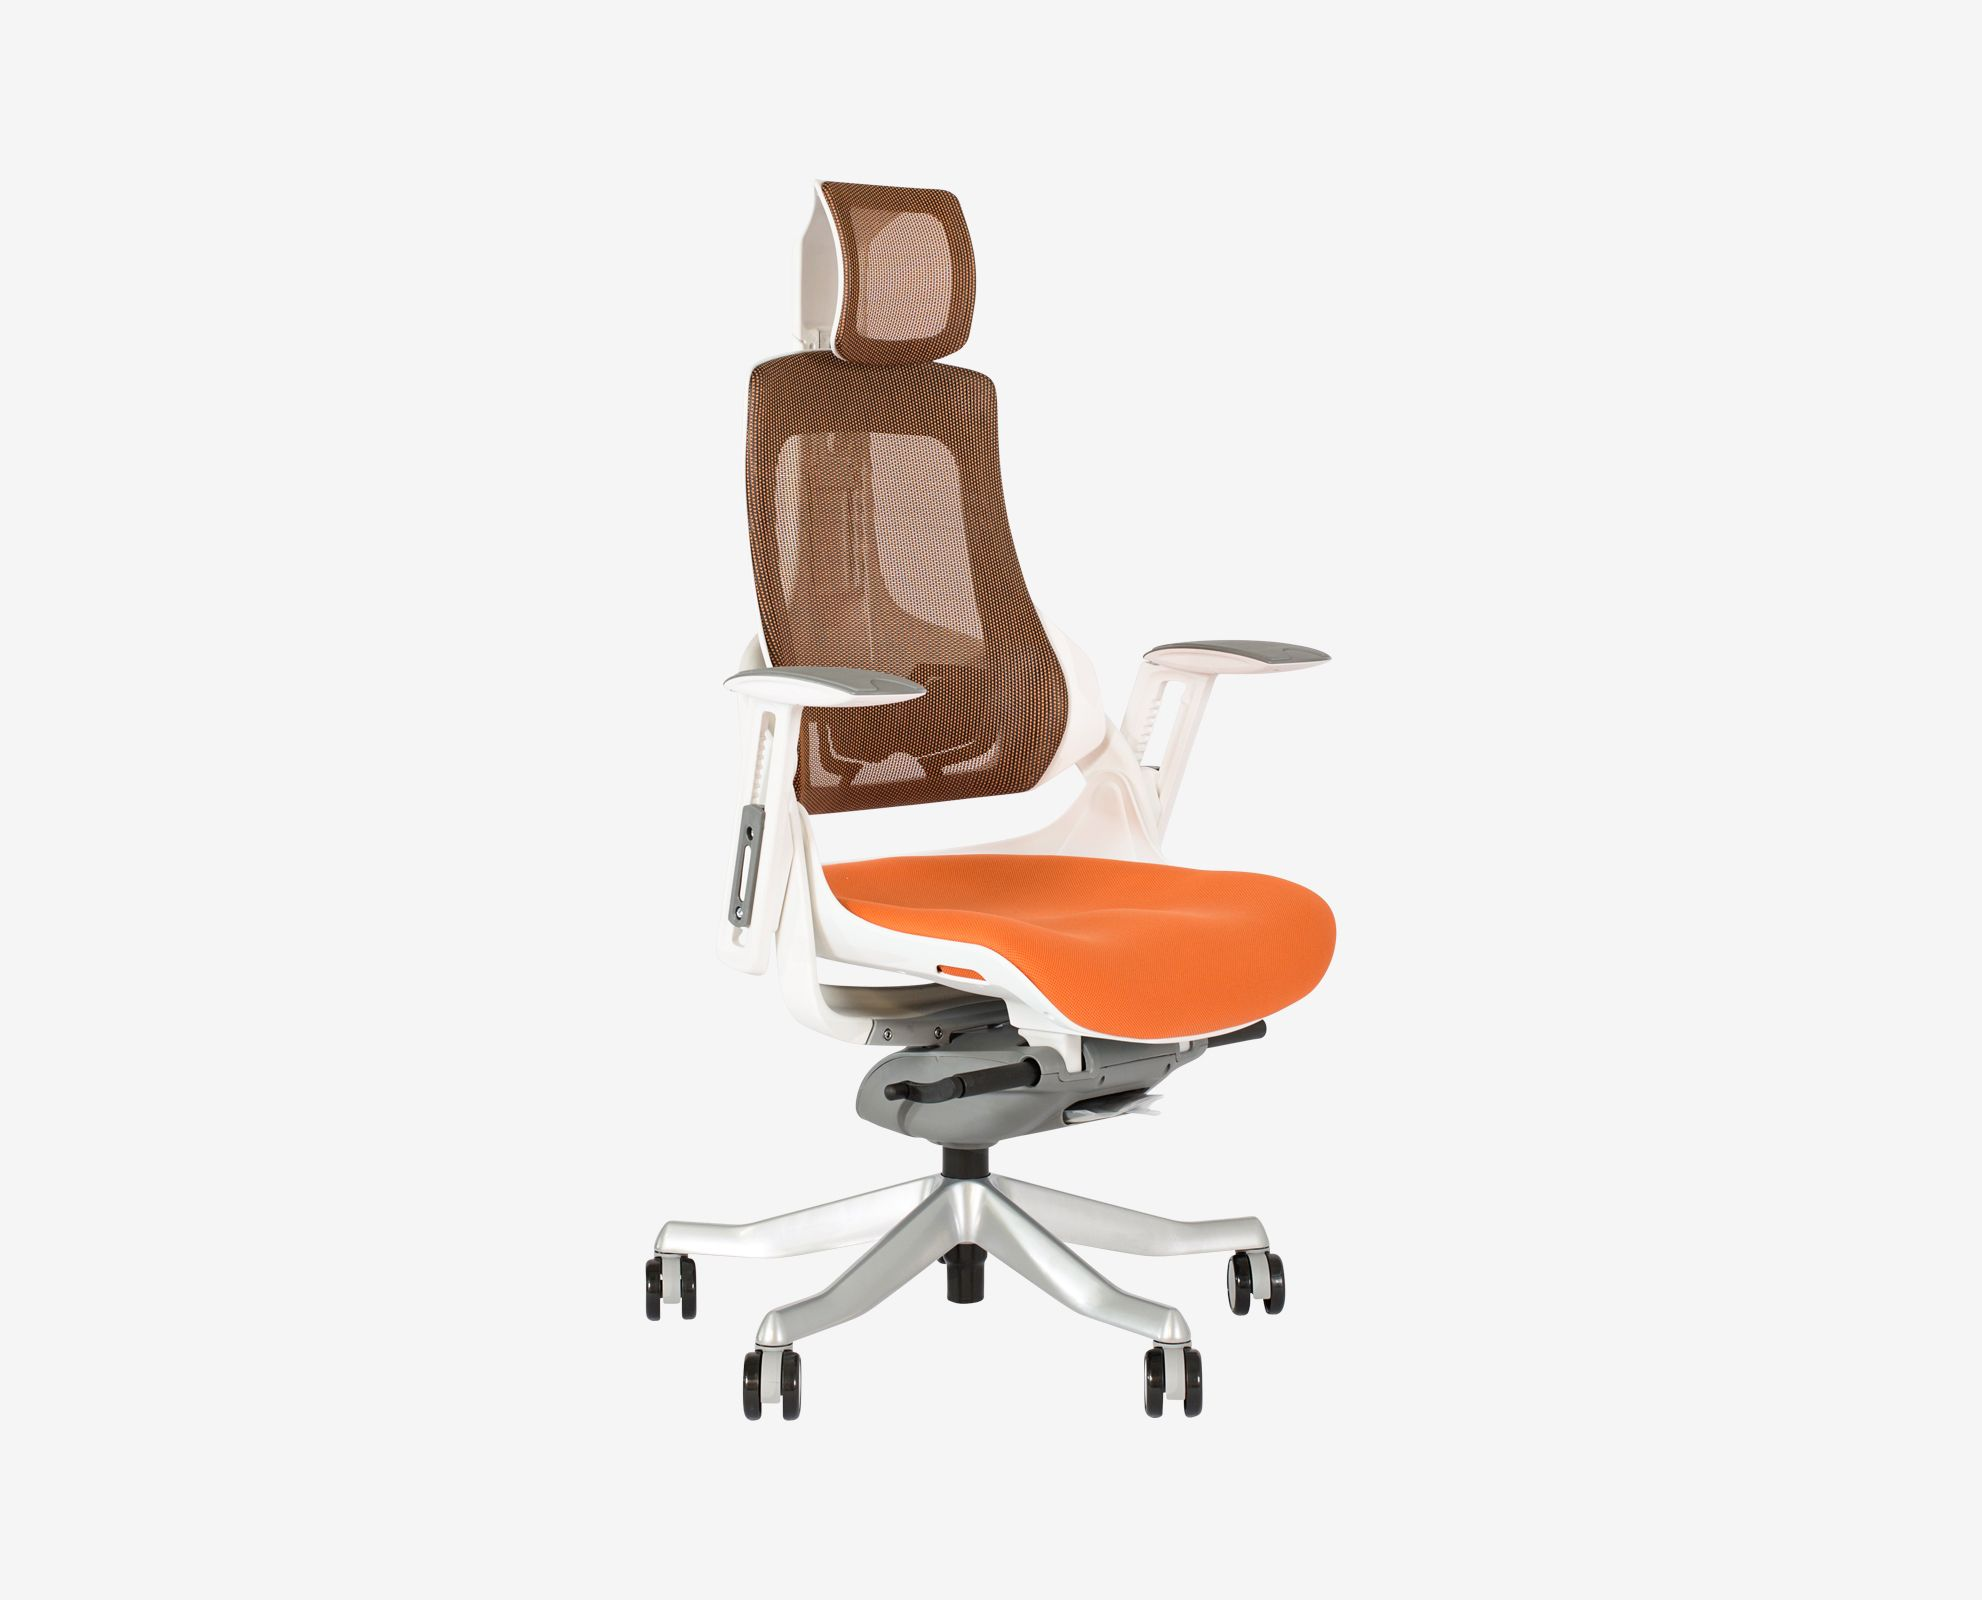 Scandinavian Designs   The Wau Desk Chair Makes A Stylish Addition To Any  Office Combining Ergonomics And Ingenuity To Bring You Ultimate Comfort.